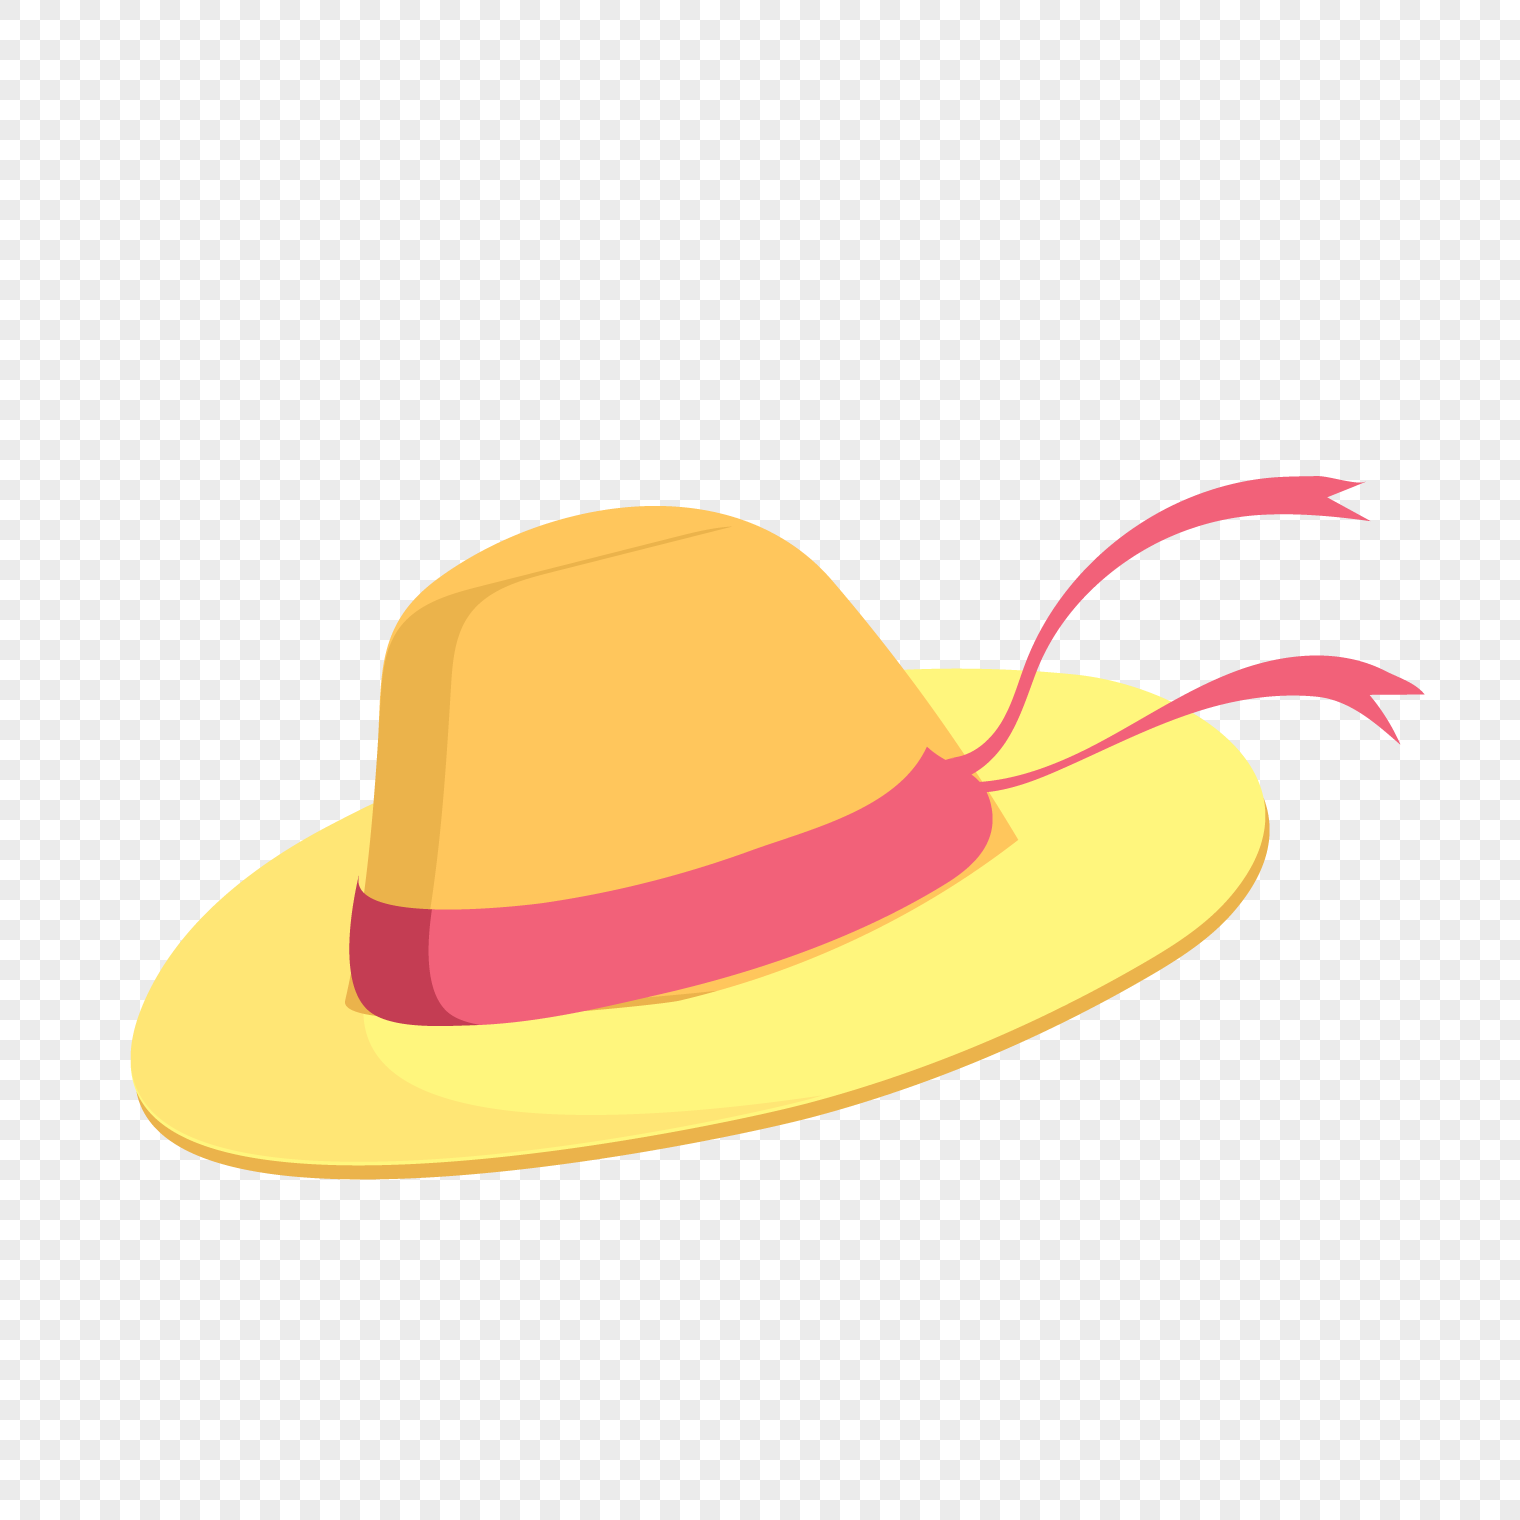 1520x1520 Cartoon Straw Hat Vector Material Png Image Picture Free Download